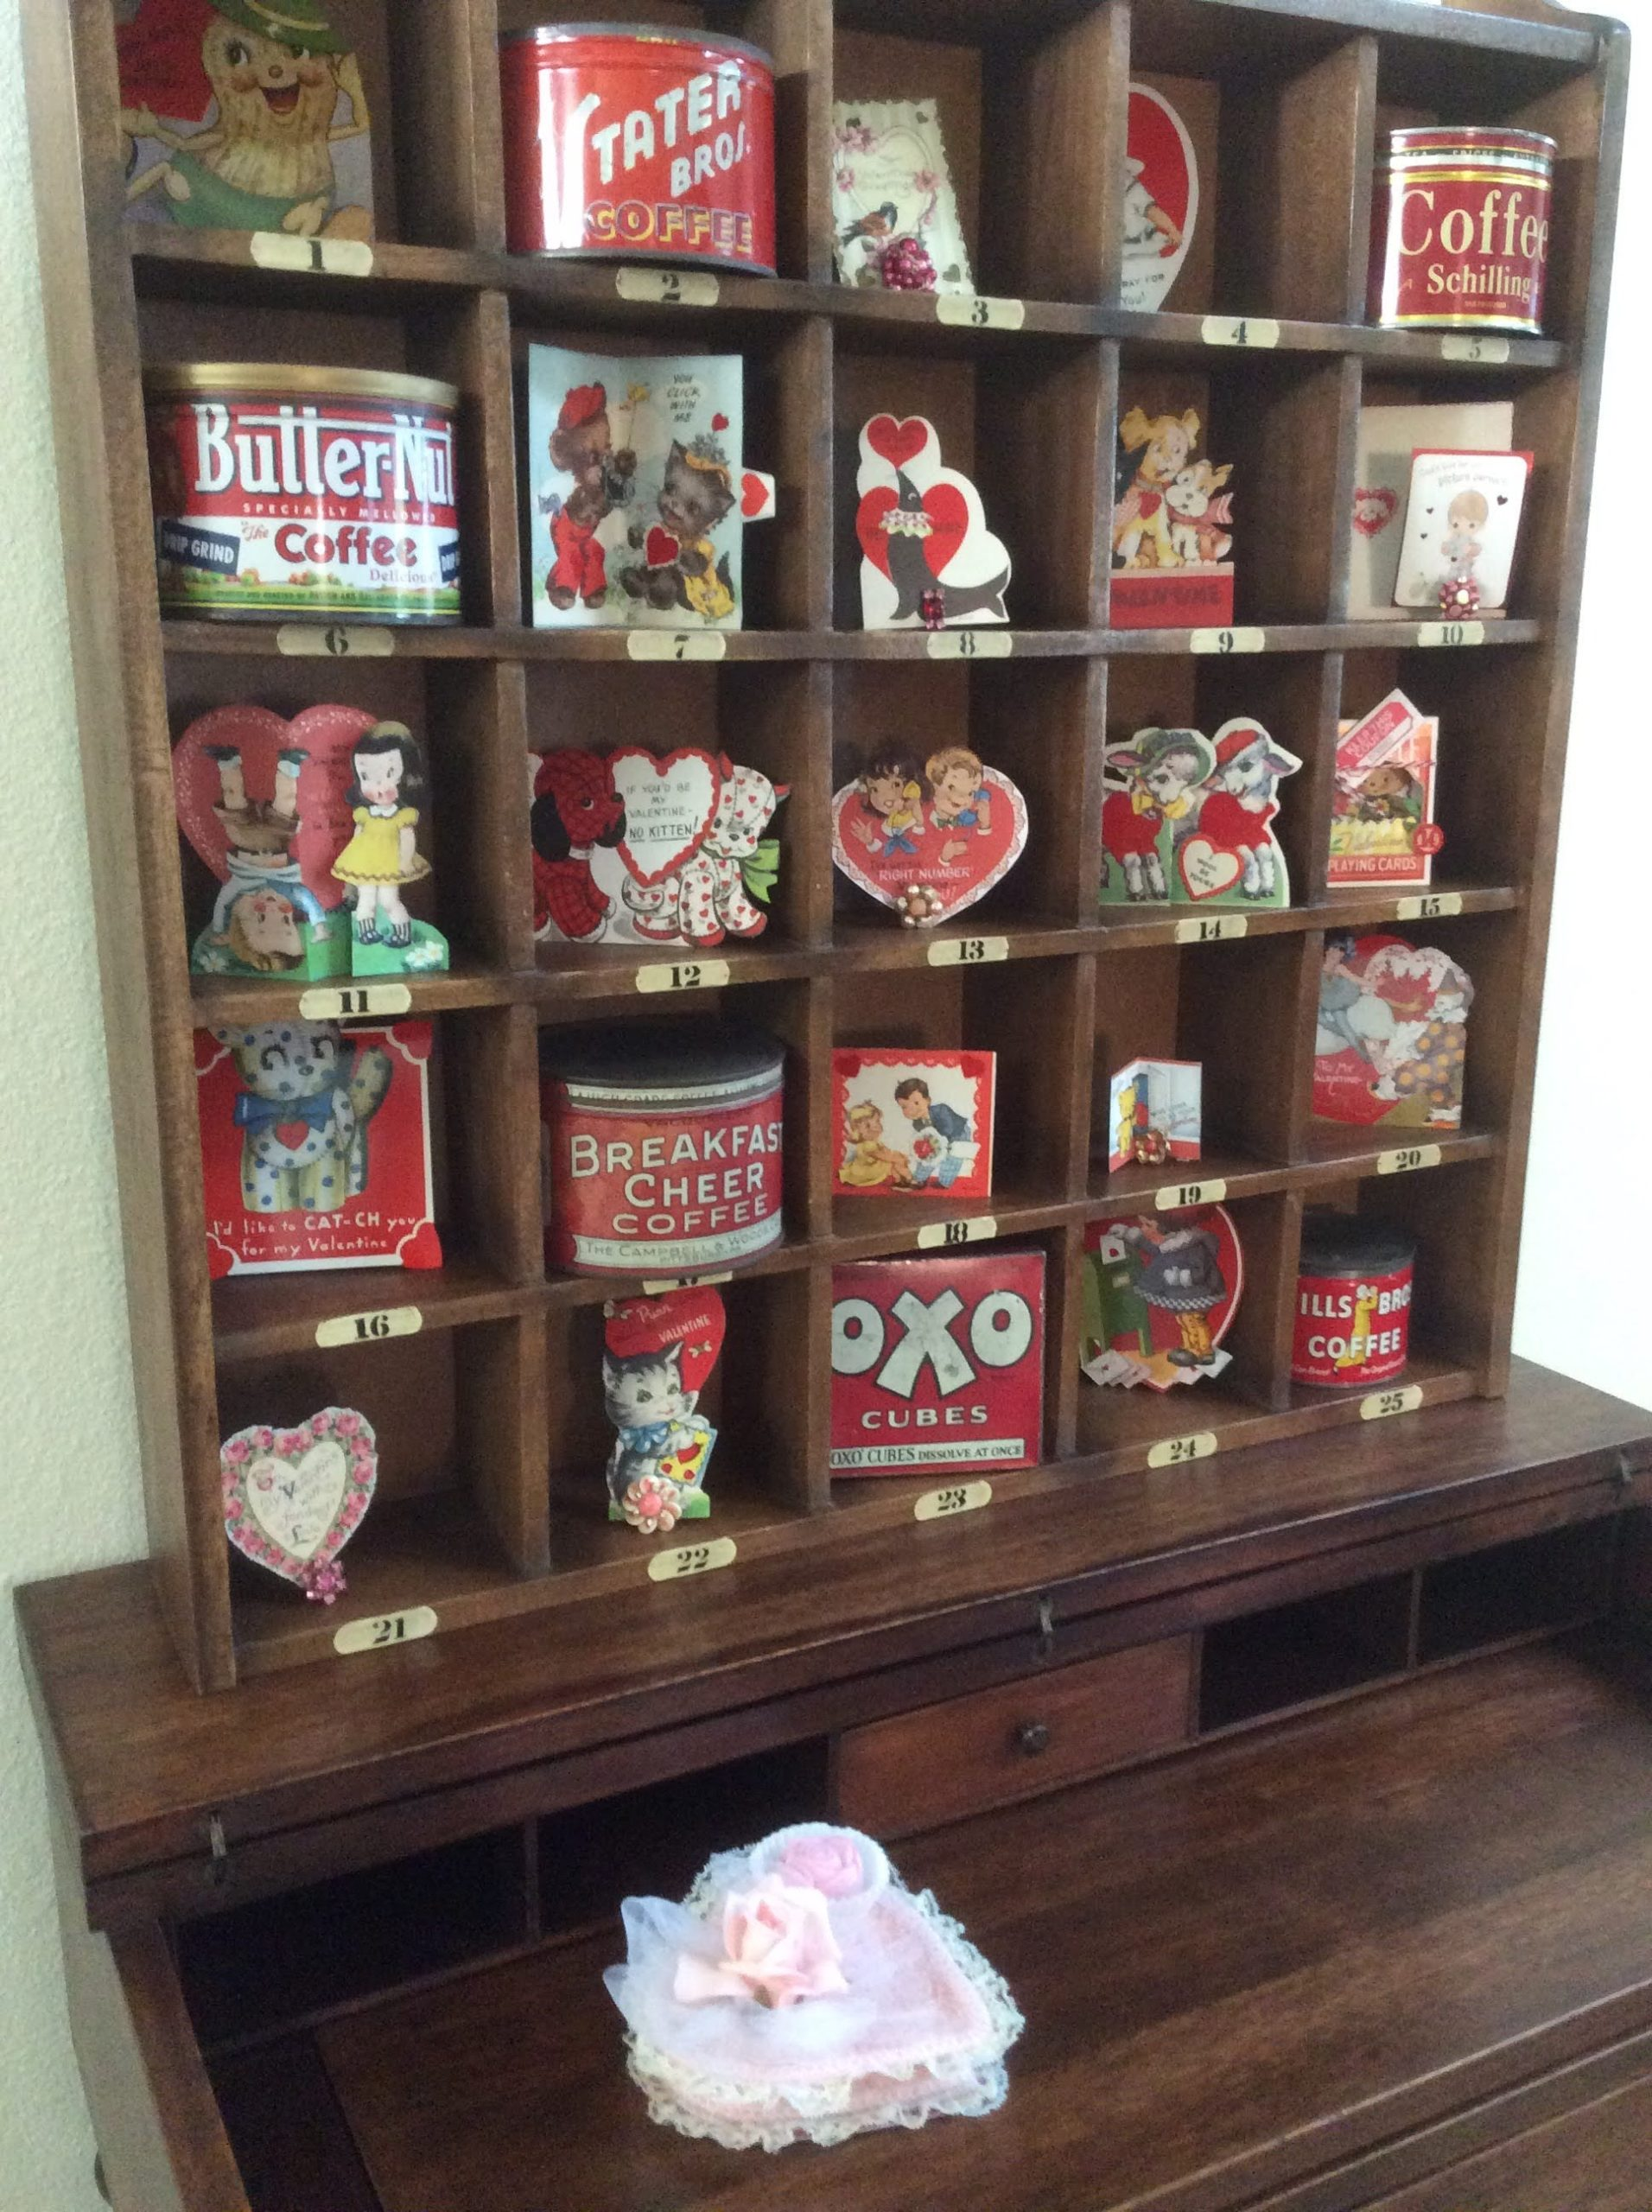 Vintage Valentine's Day cubbies by Fresh Vintage by Lisa S, featured on DIY Salvaged Junk Projects 562 on Funky Junk!